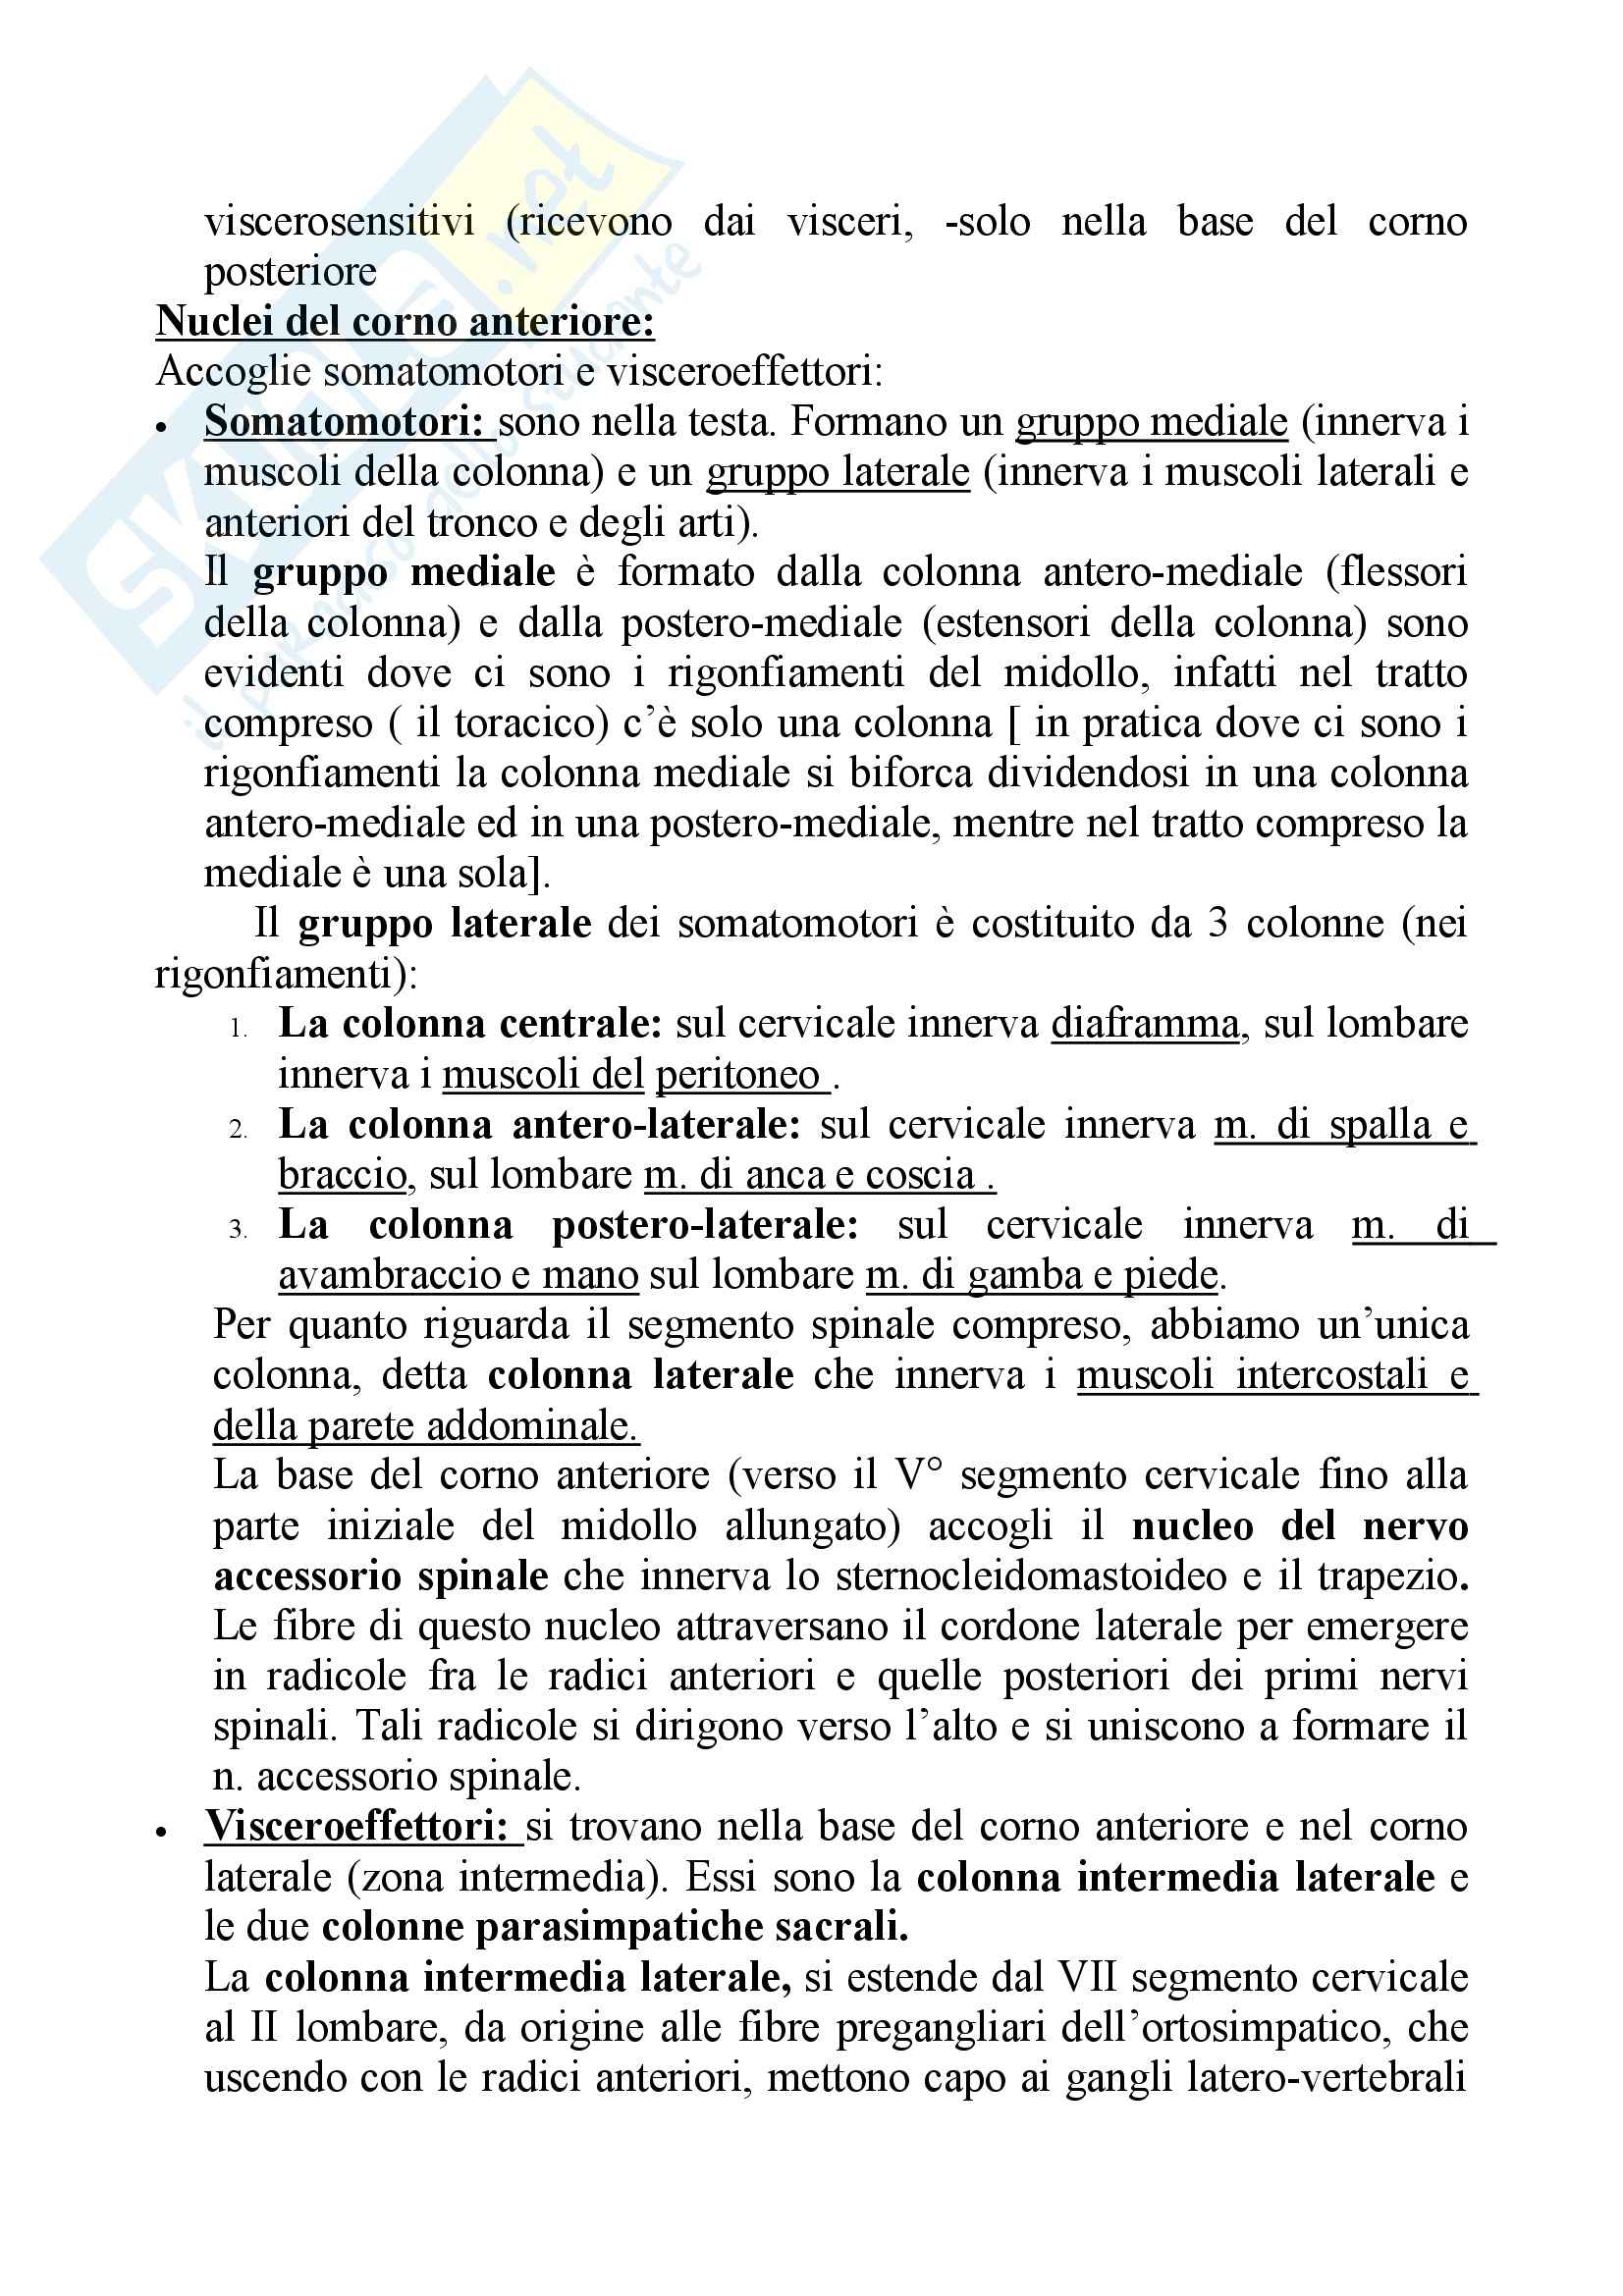 Fisiologia – Midollo spinale Pag. 6